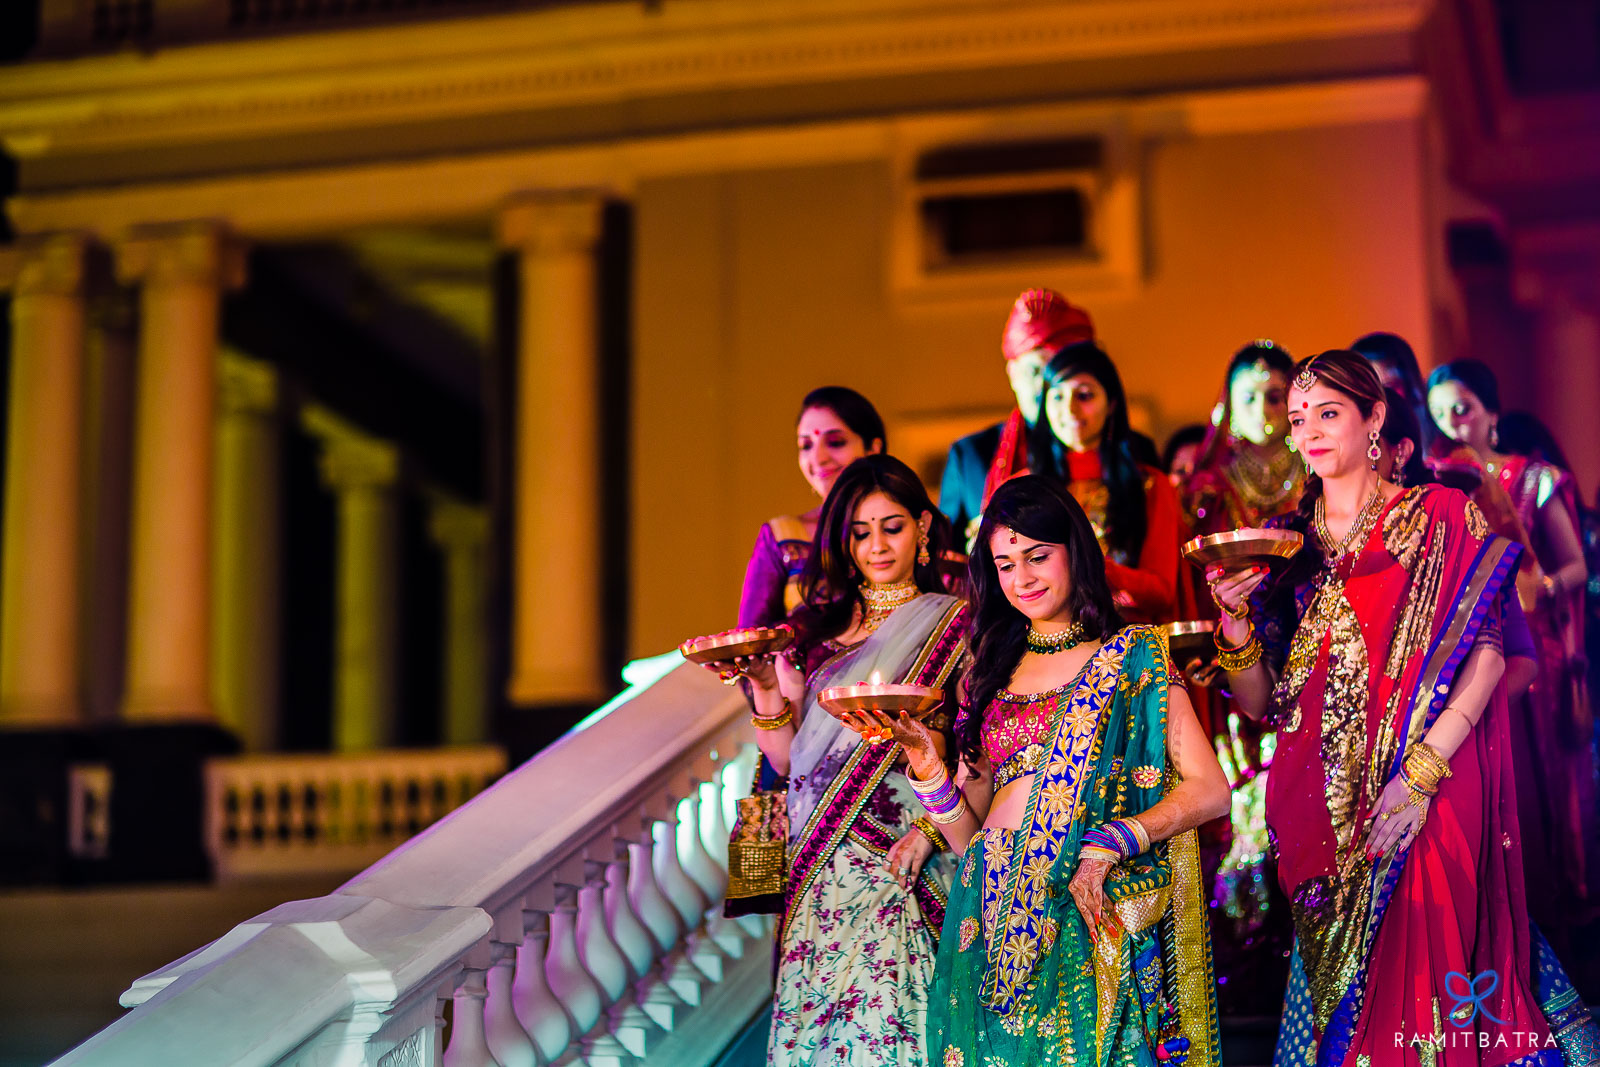 Wedding-Photographer-Hyderabad-India-RamitBatra_51